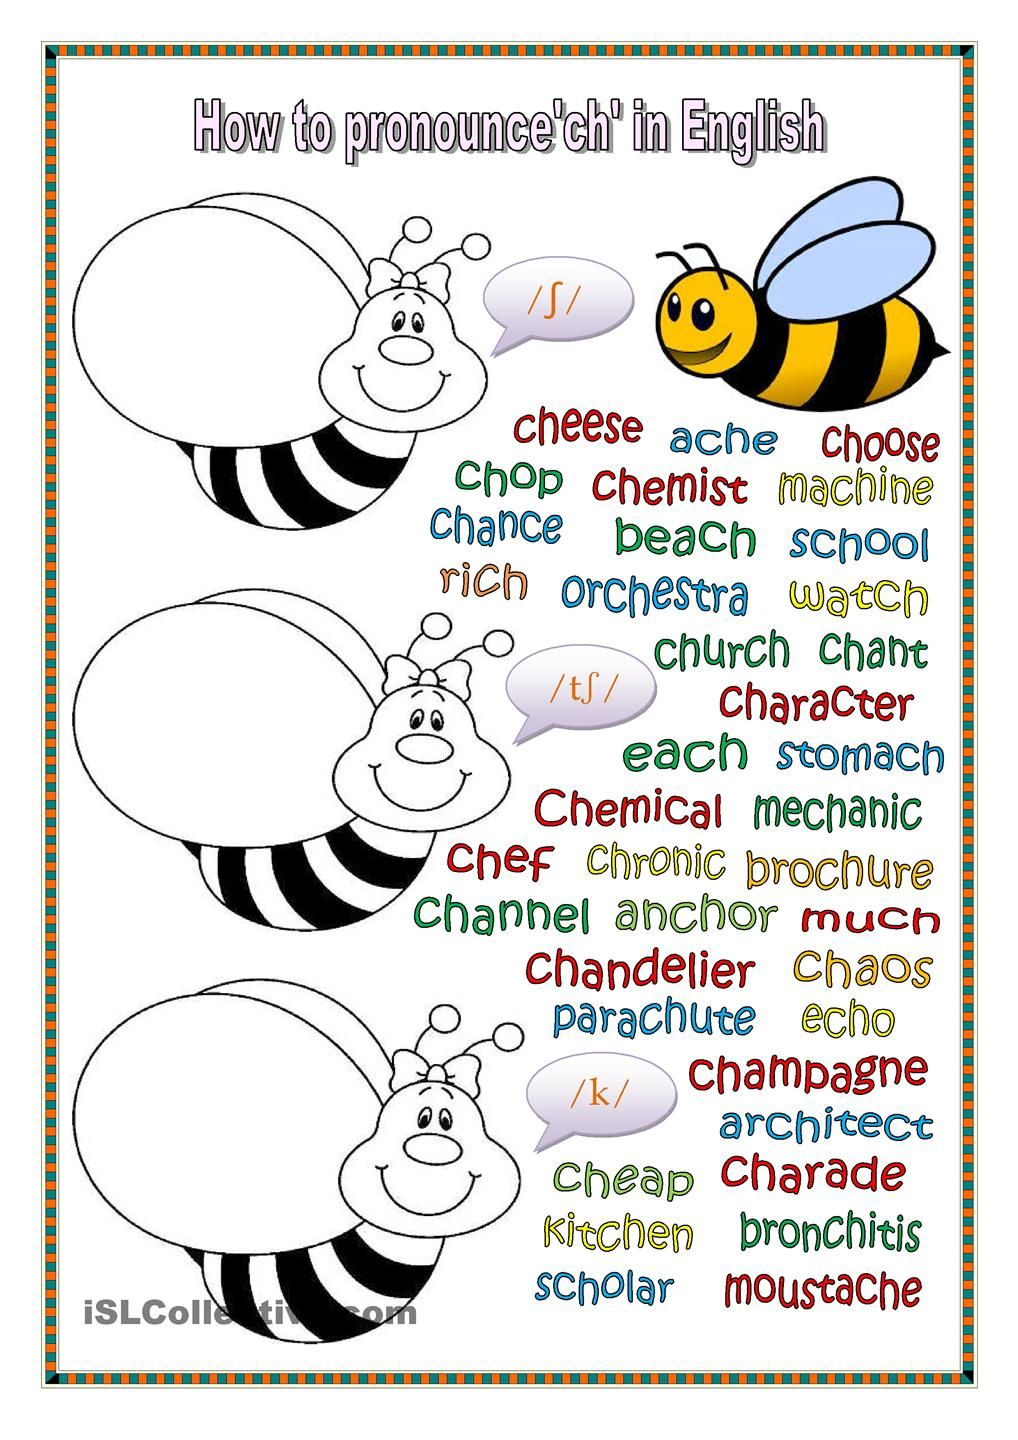 Workbooks pronunciation key worksheets : How to pronounce ch in English. (key included) | Pronunciation ...